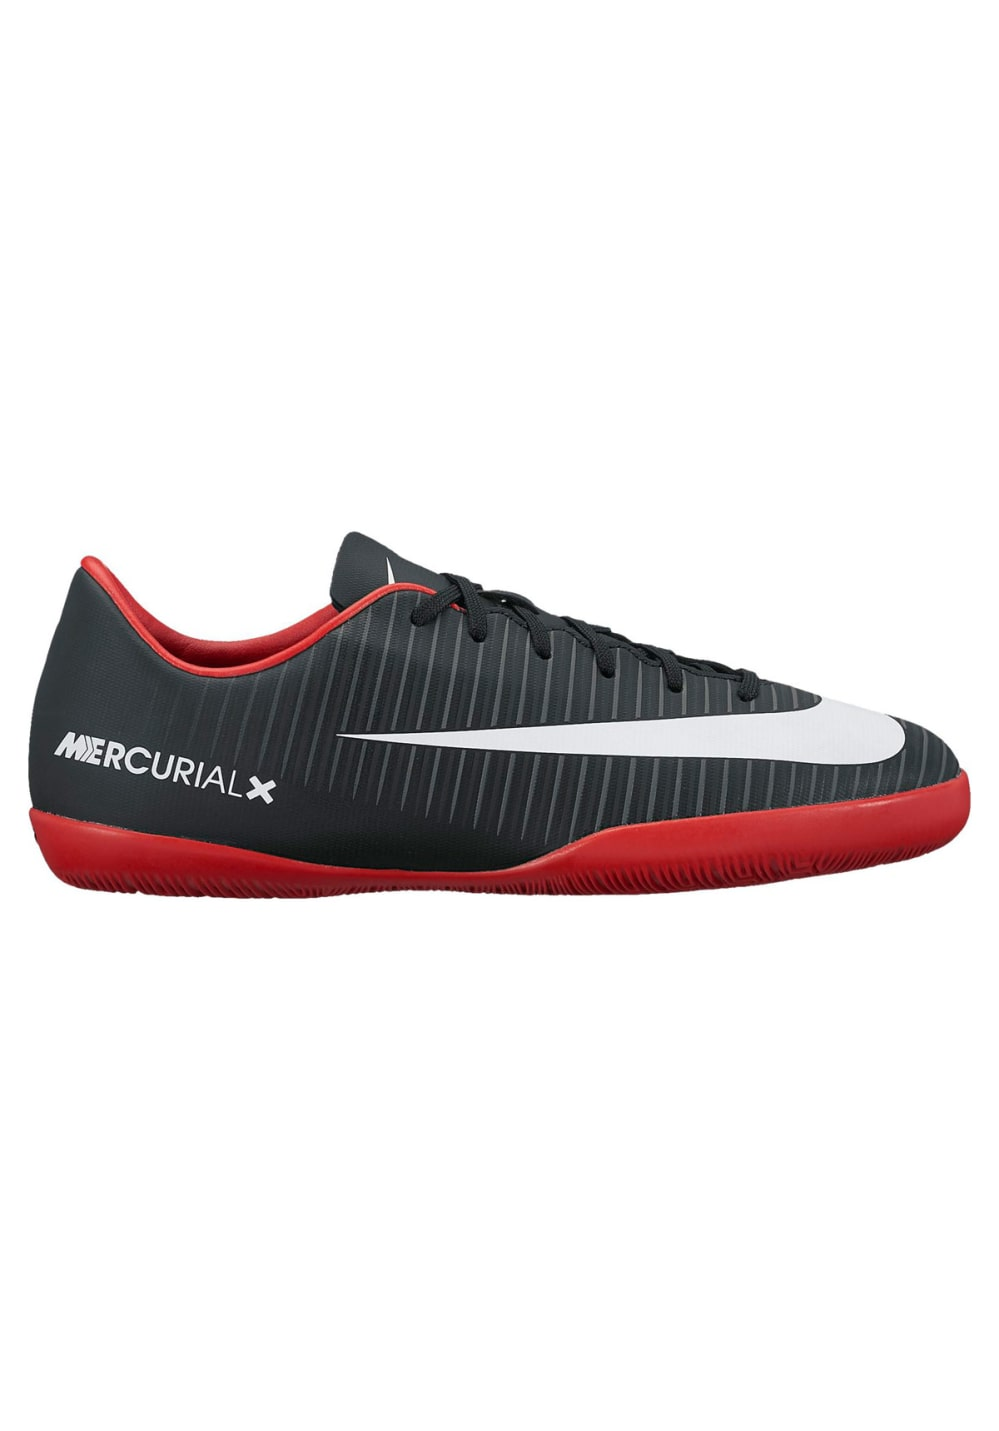 3fabea666 ... Nike Jr. Mercurial Vapor XI IC - Football Shoes - Black. Back to  Overview. 1; 2. Previous